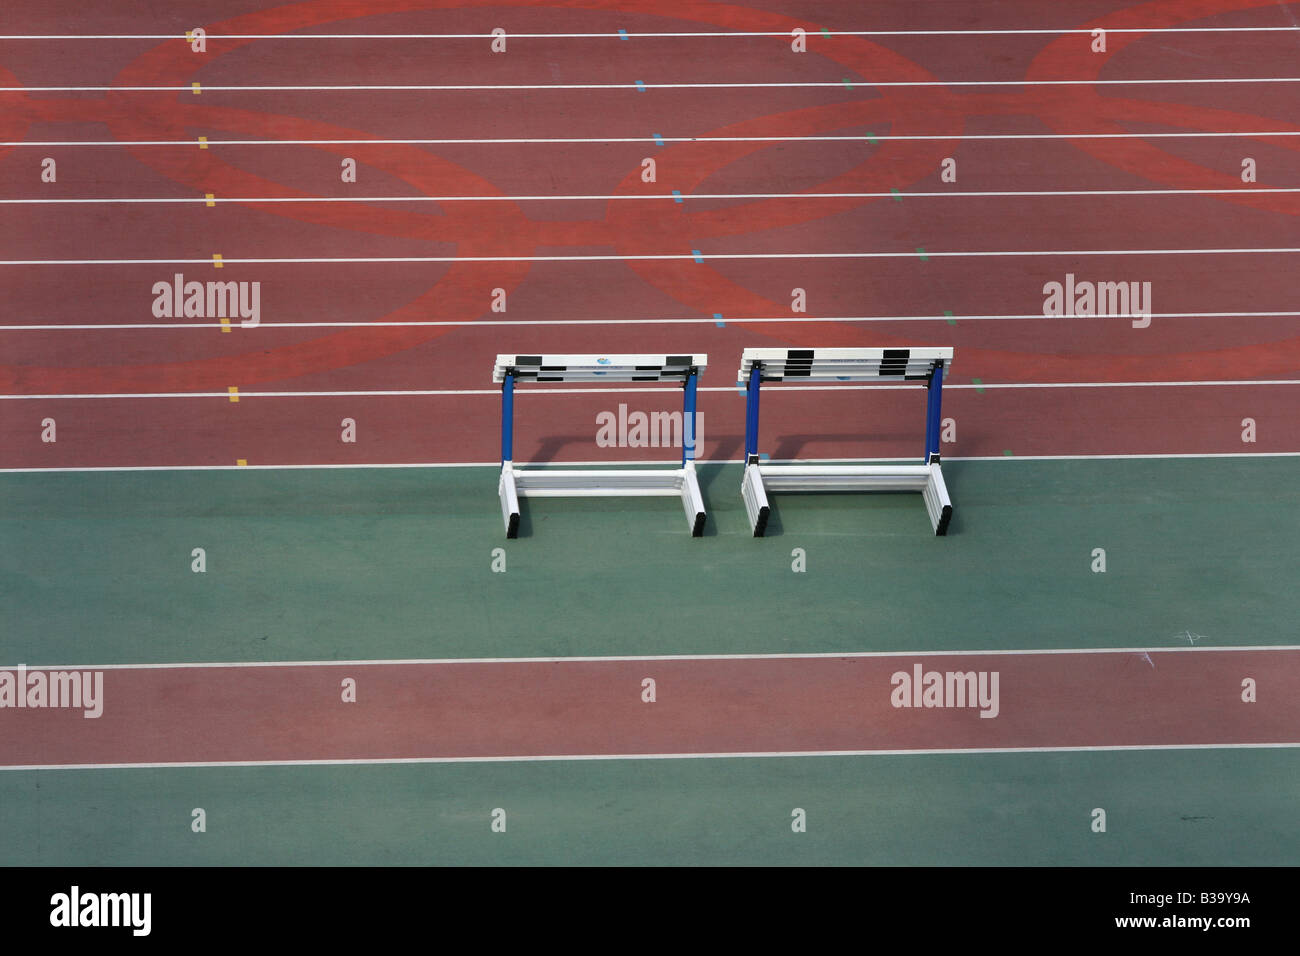 detail from empty athletics race track and stack of hurdles - Stock Image